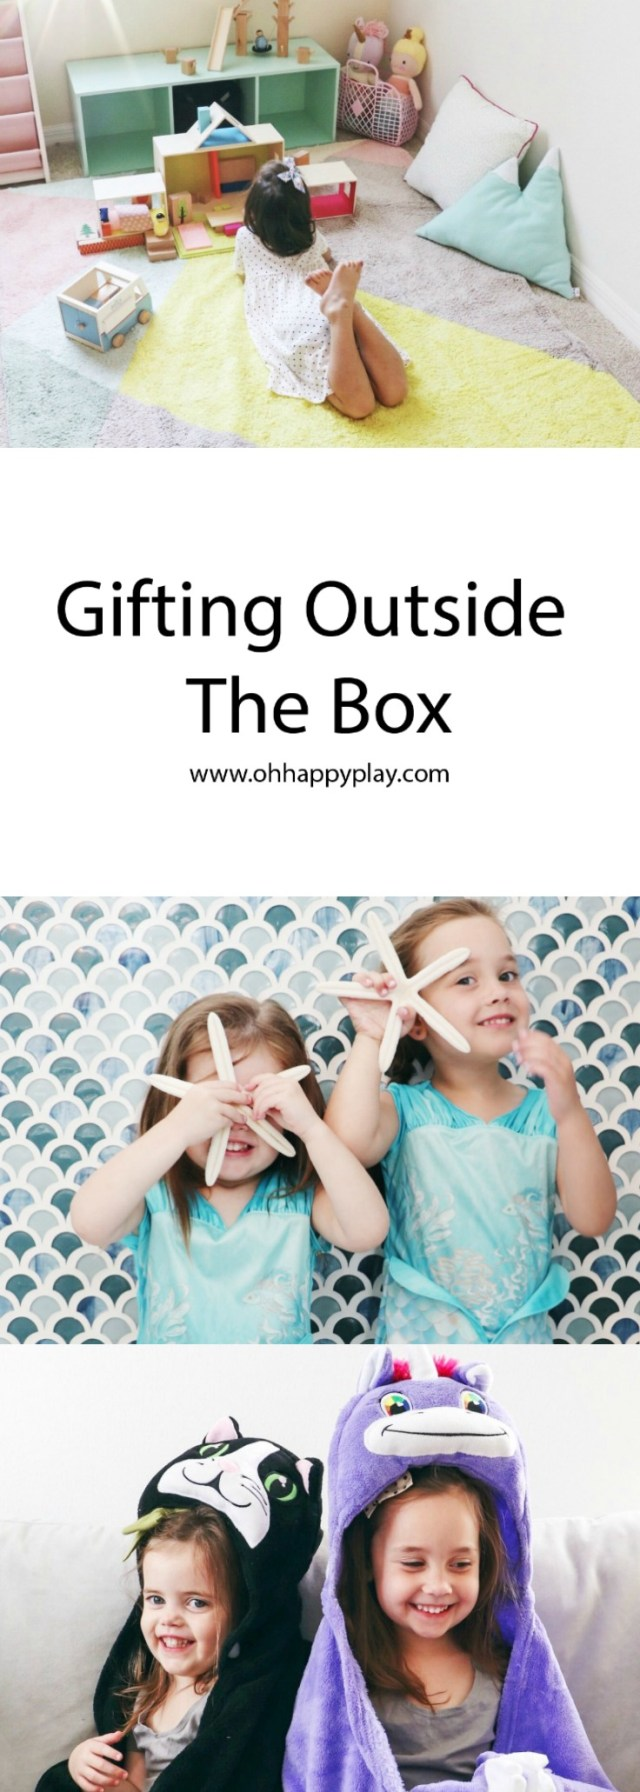 Gifting Outside The Box, holiday gift guide, gifts for kids, non toy gift ideas, non toy Christmas gift, comfy critters, Manhattan toy, best dress up clothes, quality dress up, quality princess dresses